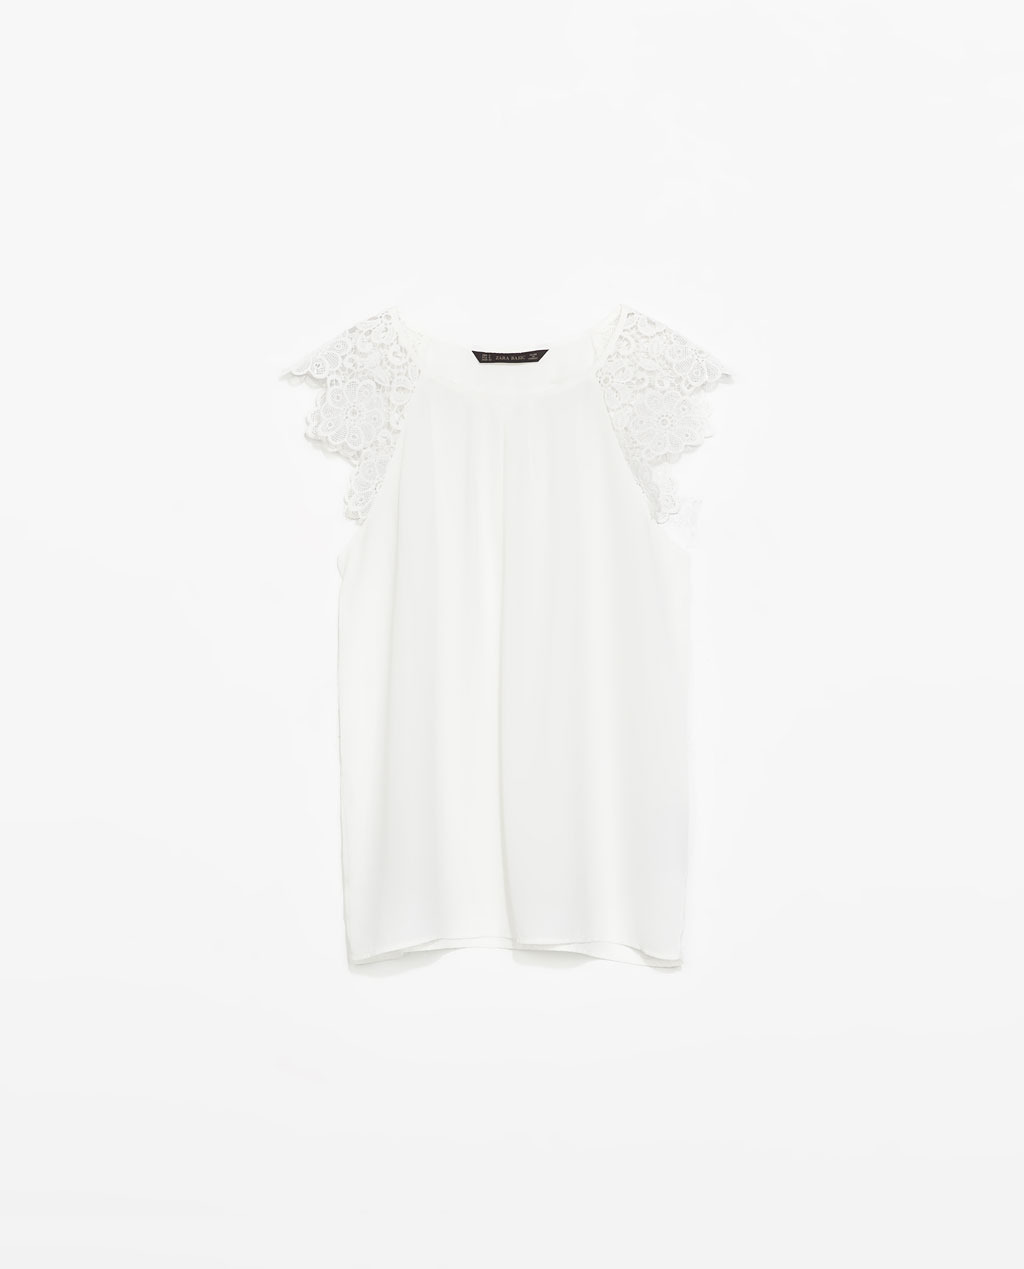 Top With Guipure Sleeve - neckline: round neck; sleeve style: capped; pattern: plain; bust detail: subtle bust detail; predominant colour: white; occasions: casual, evening, creative work; length: standard; style: top; fibres: polyester/polyamide - 100%; fit: straight cut; sleeve length: short sleeve; texture group: sheer fabrics/chiffon/organza etc.; pattern type: fabric; embellishment: lace; season: s/s 2014; wardrobe: highlight